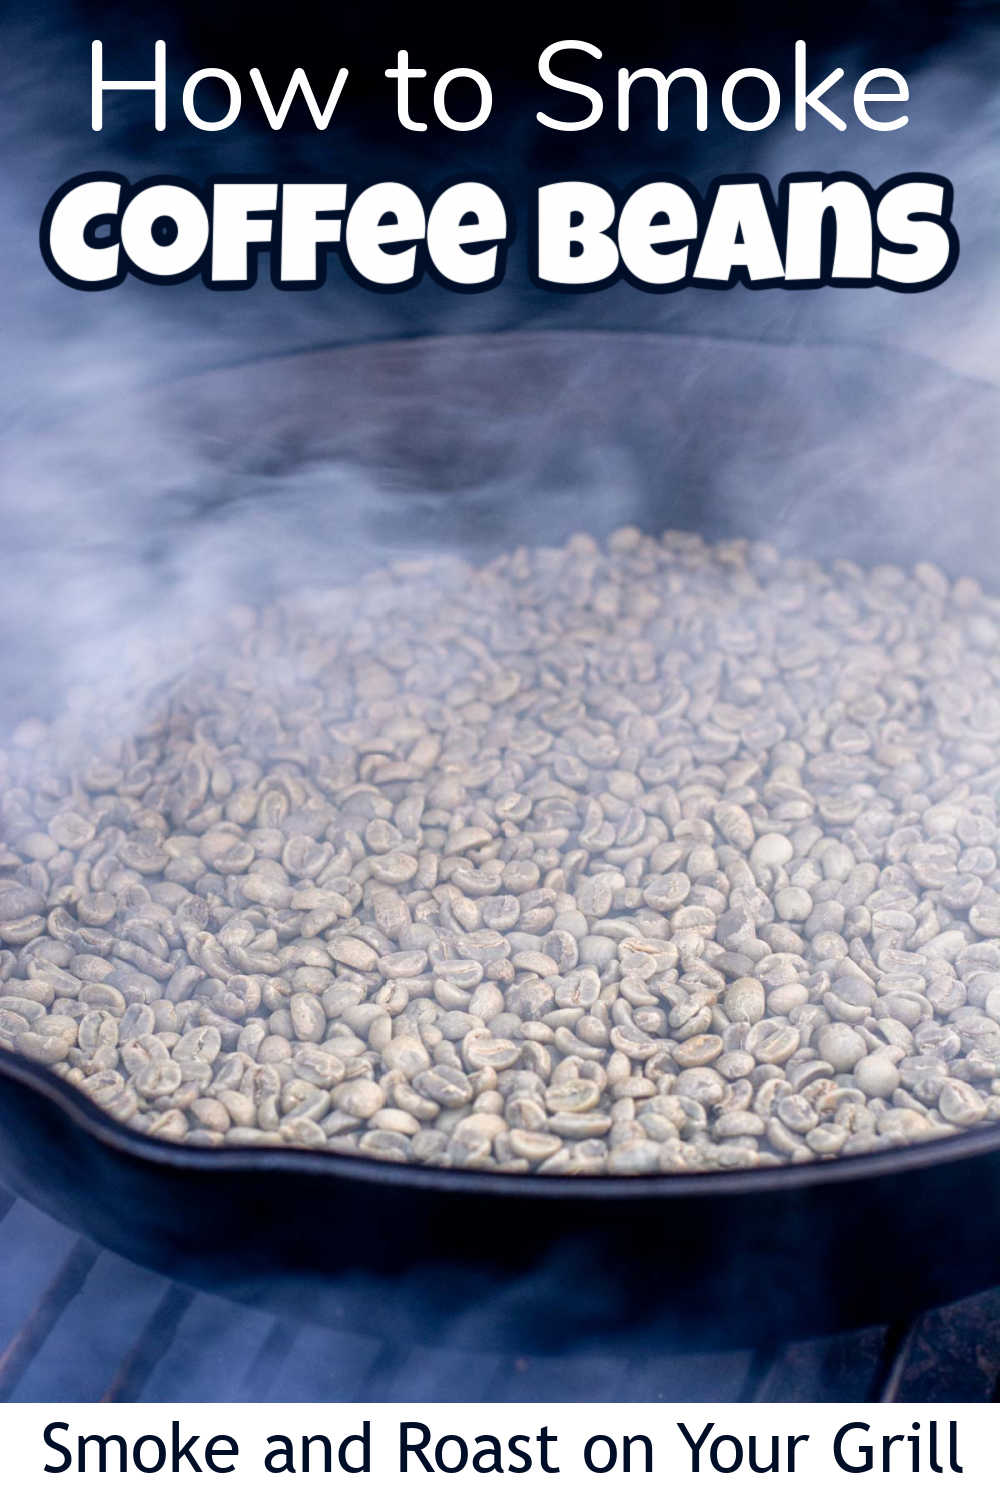 How to Roast and Smoke Coffee Beans on the Grill {30 Minutes}